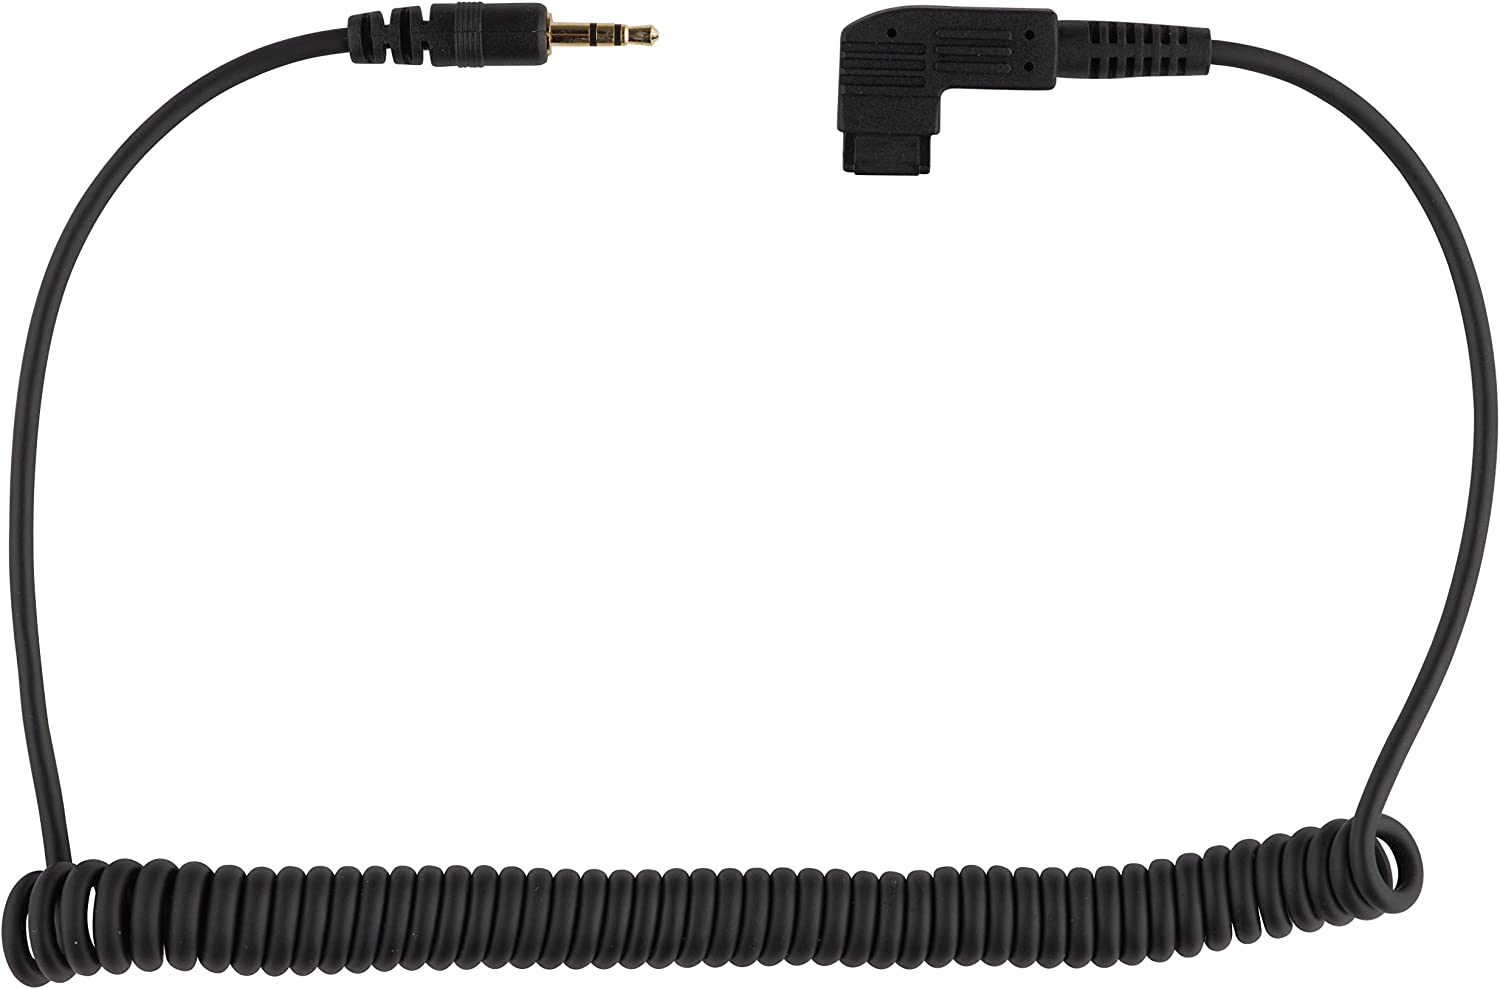 Phottix Extra Cable for Multi-Function Remote with Digital Timer TR-90 S6 PH17360